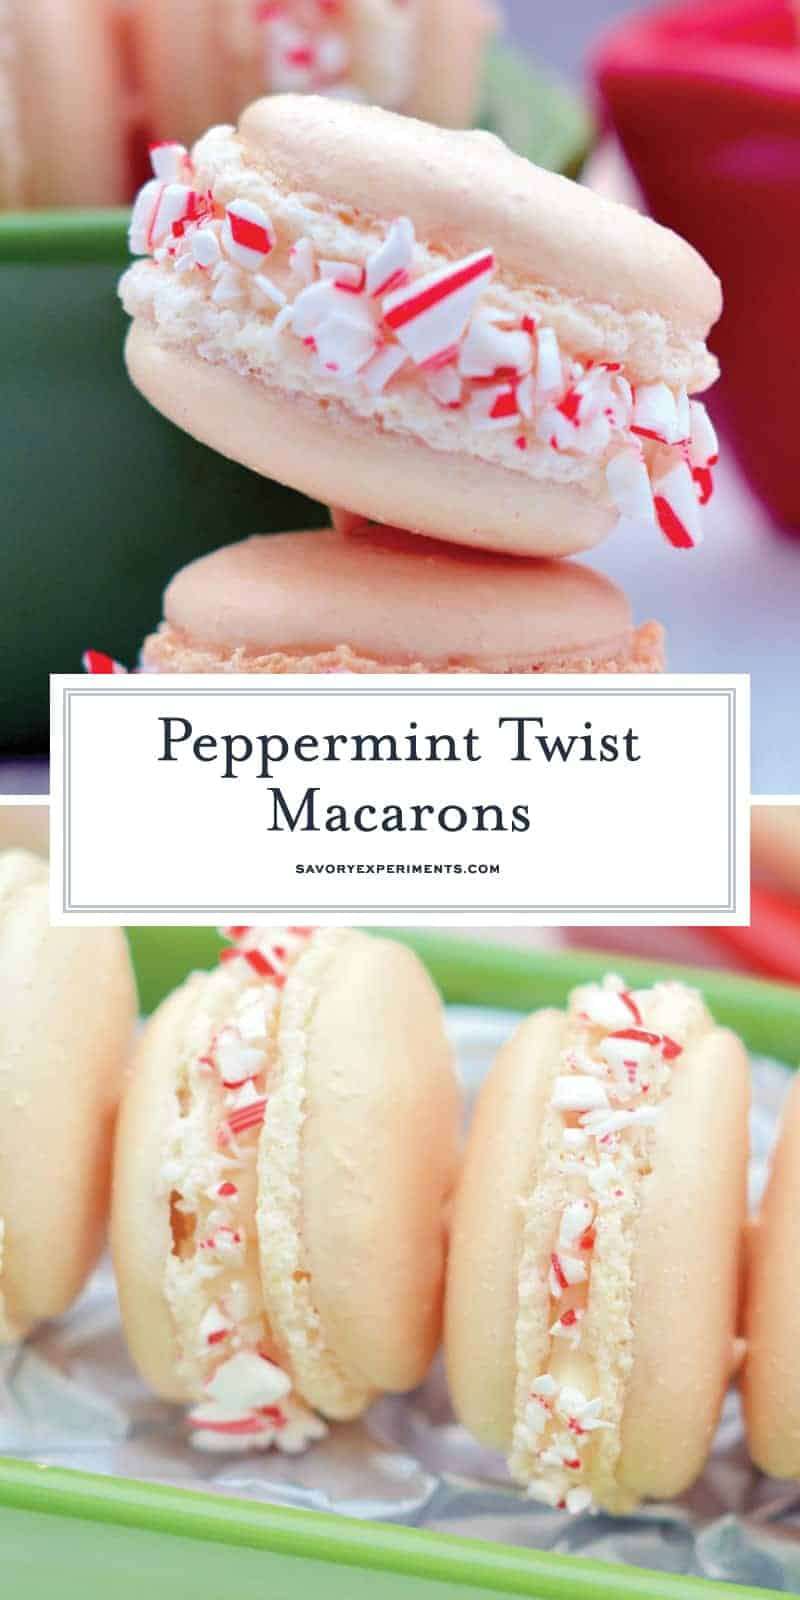 Peppermint Twist Macarons are an easy macaron recipe with a buttercream filling. Perfect recette macarons for Christmas cookies and holiday parties. #easymacaronrecipe #christmascookies www.savoryexperiments.com